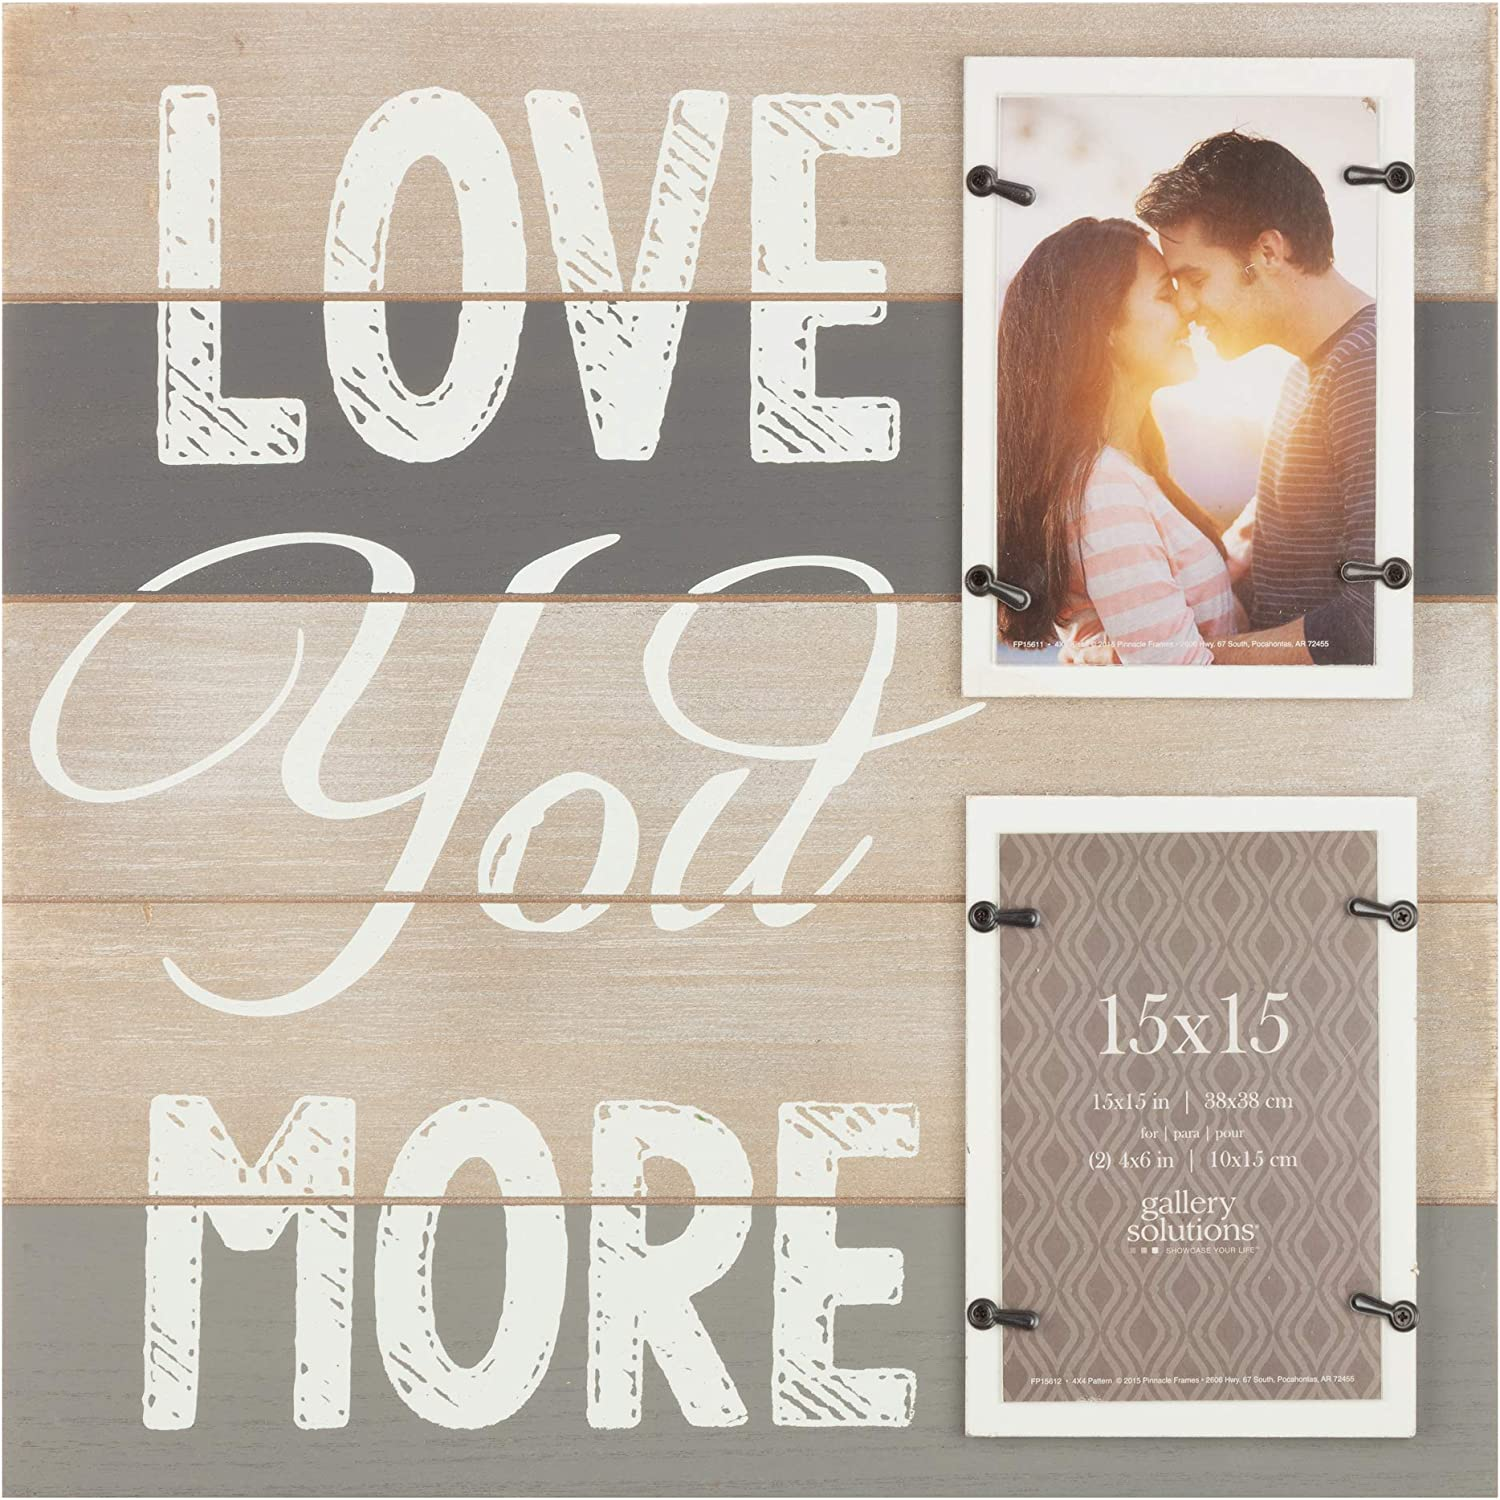 Gallery Solutions 2 Collage Wall Hanging Picture, 4x6 LOVE YOU MORE PLANK FRAME with 2-4X6 OPENINGS, Brown